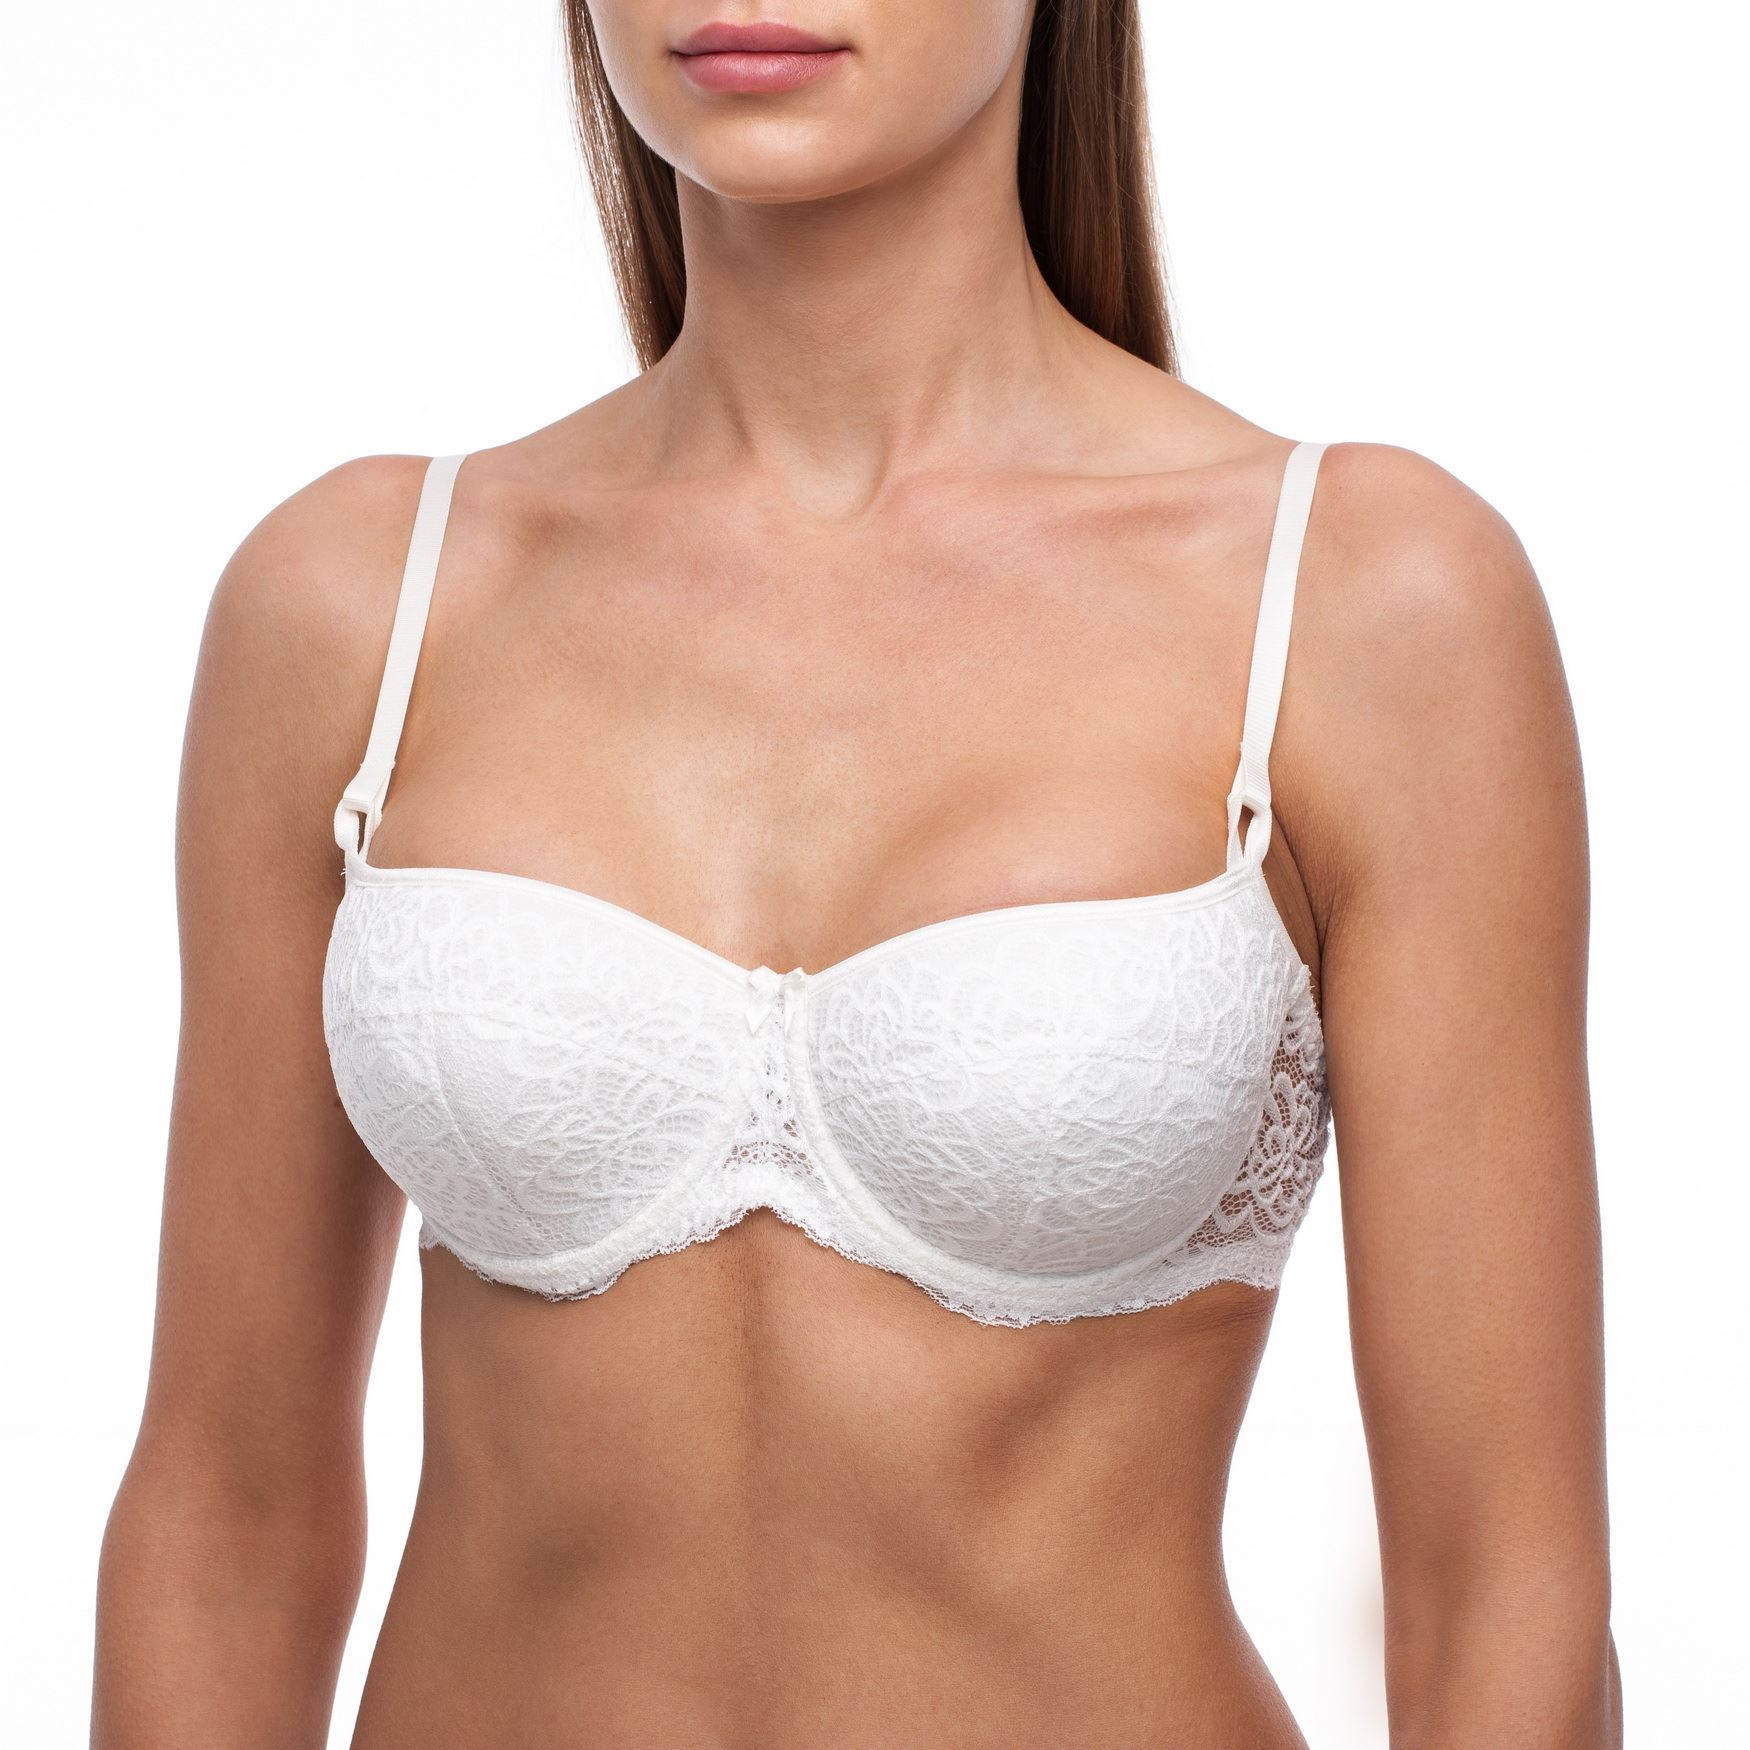 Balconette-Demi-Underwire-Lightly-Padded-Sexy-Comfortable-Lace-Half-Cup-Bra